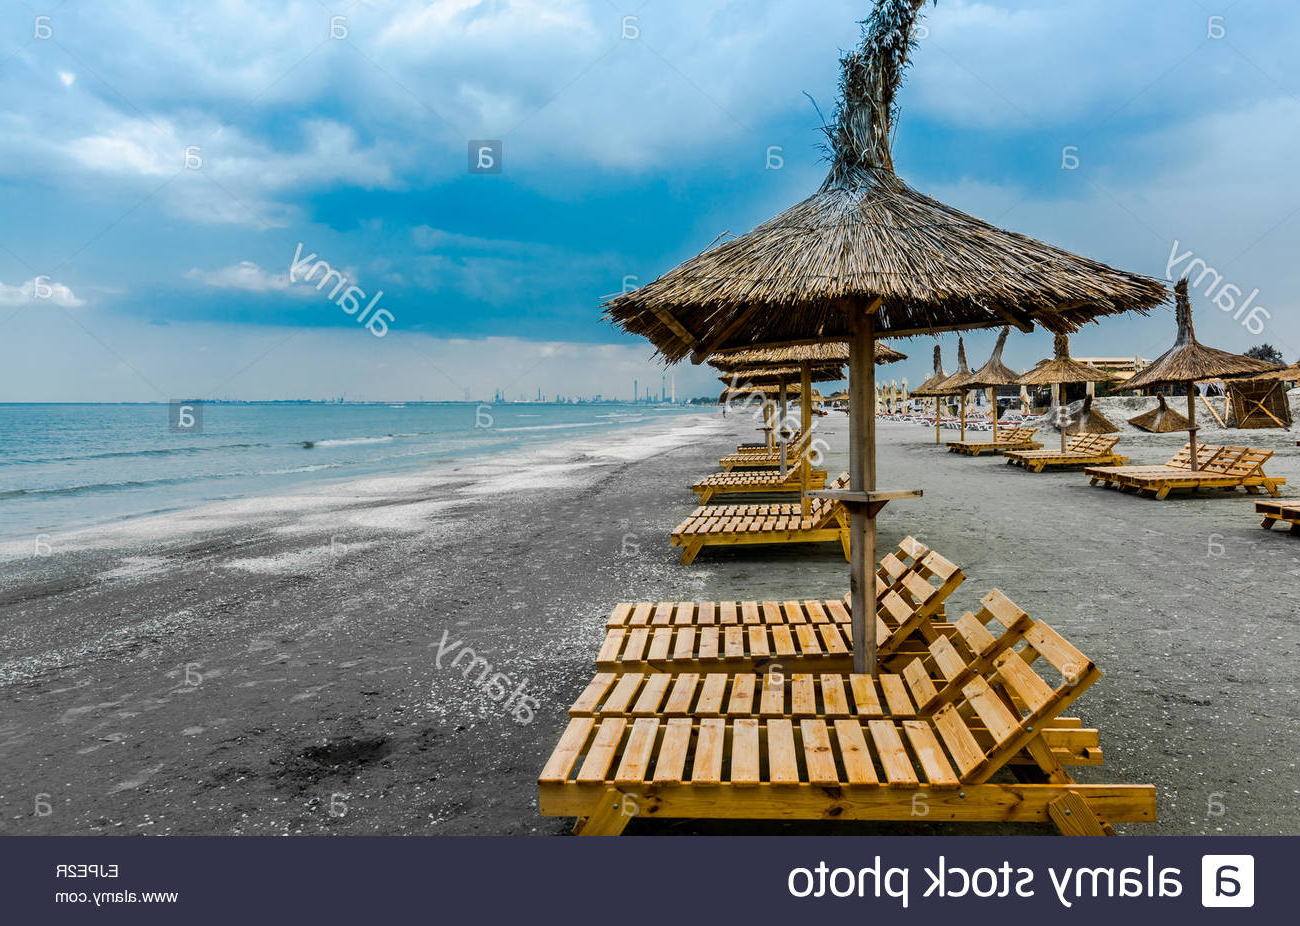 Cloudy Seaside Beach With Wooden Lounge Chairs And Straw Umbrellas With Regard To Popular Seaside Beach Umbrellas (View 2 of 20)